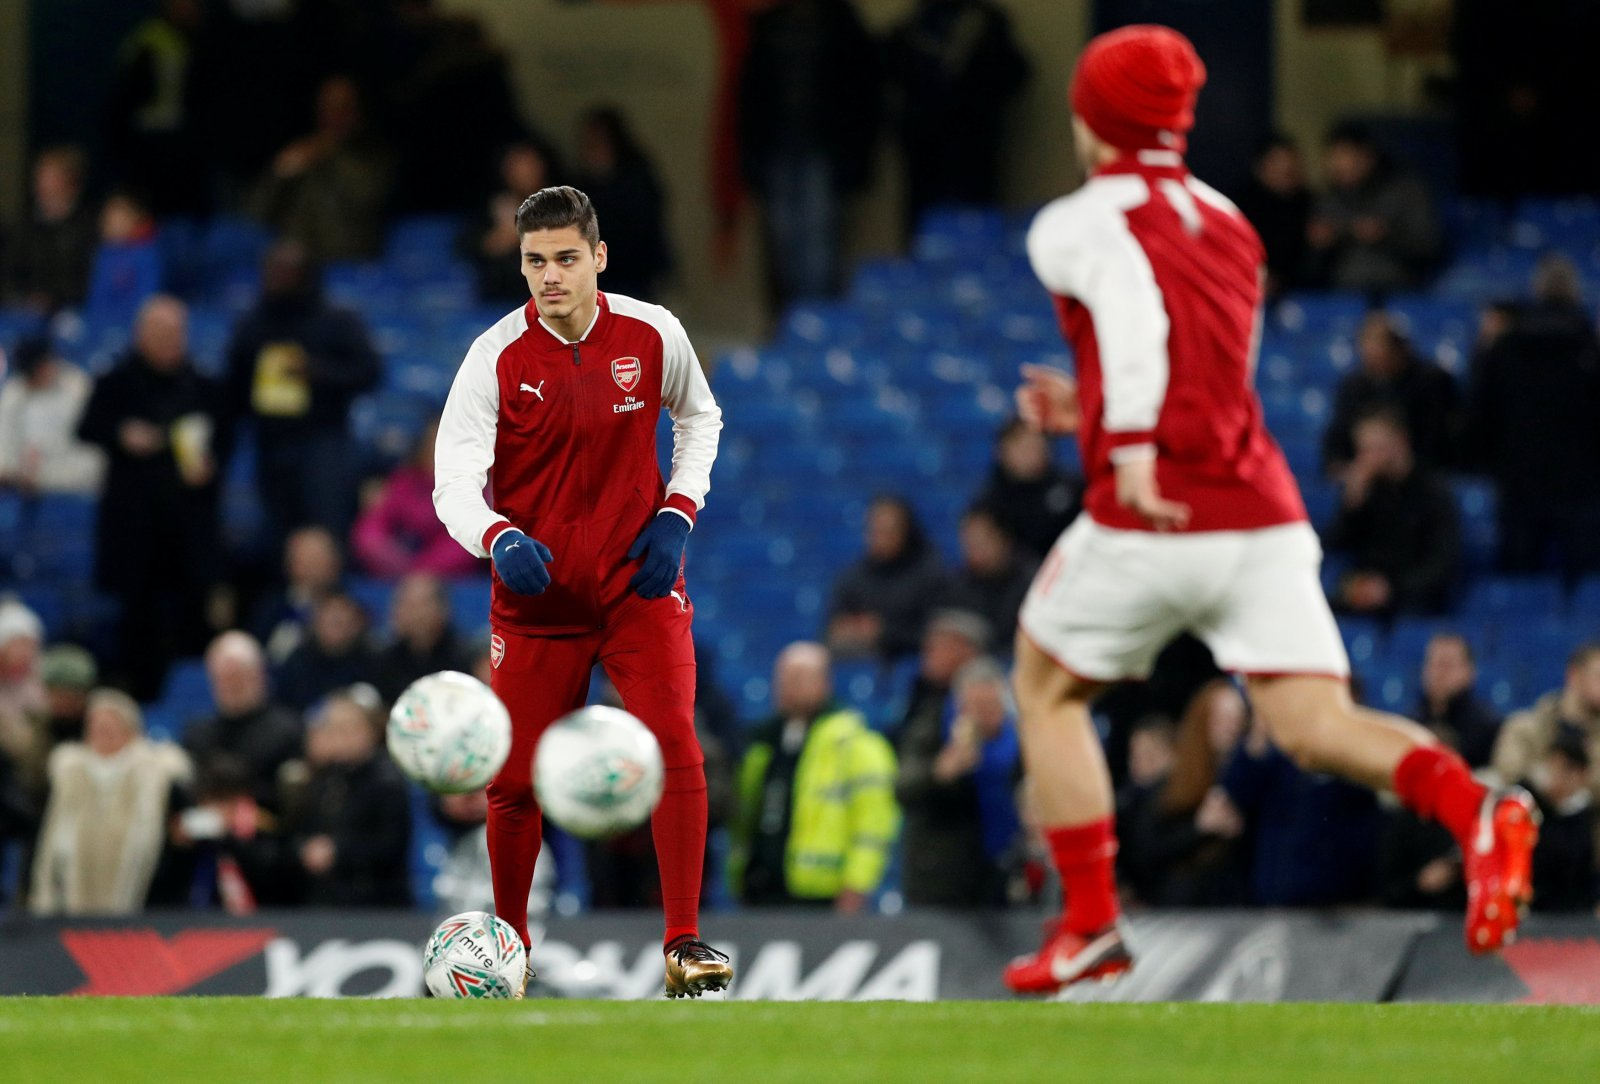 Arsenal: Konstantinos Mavropanos set to be sidelined for up to eight weeks